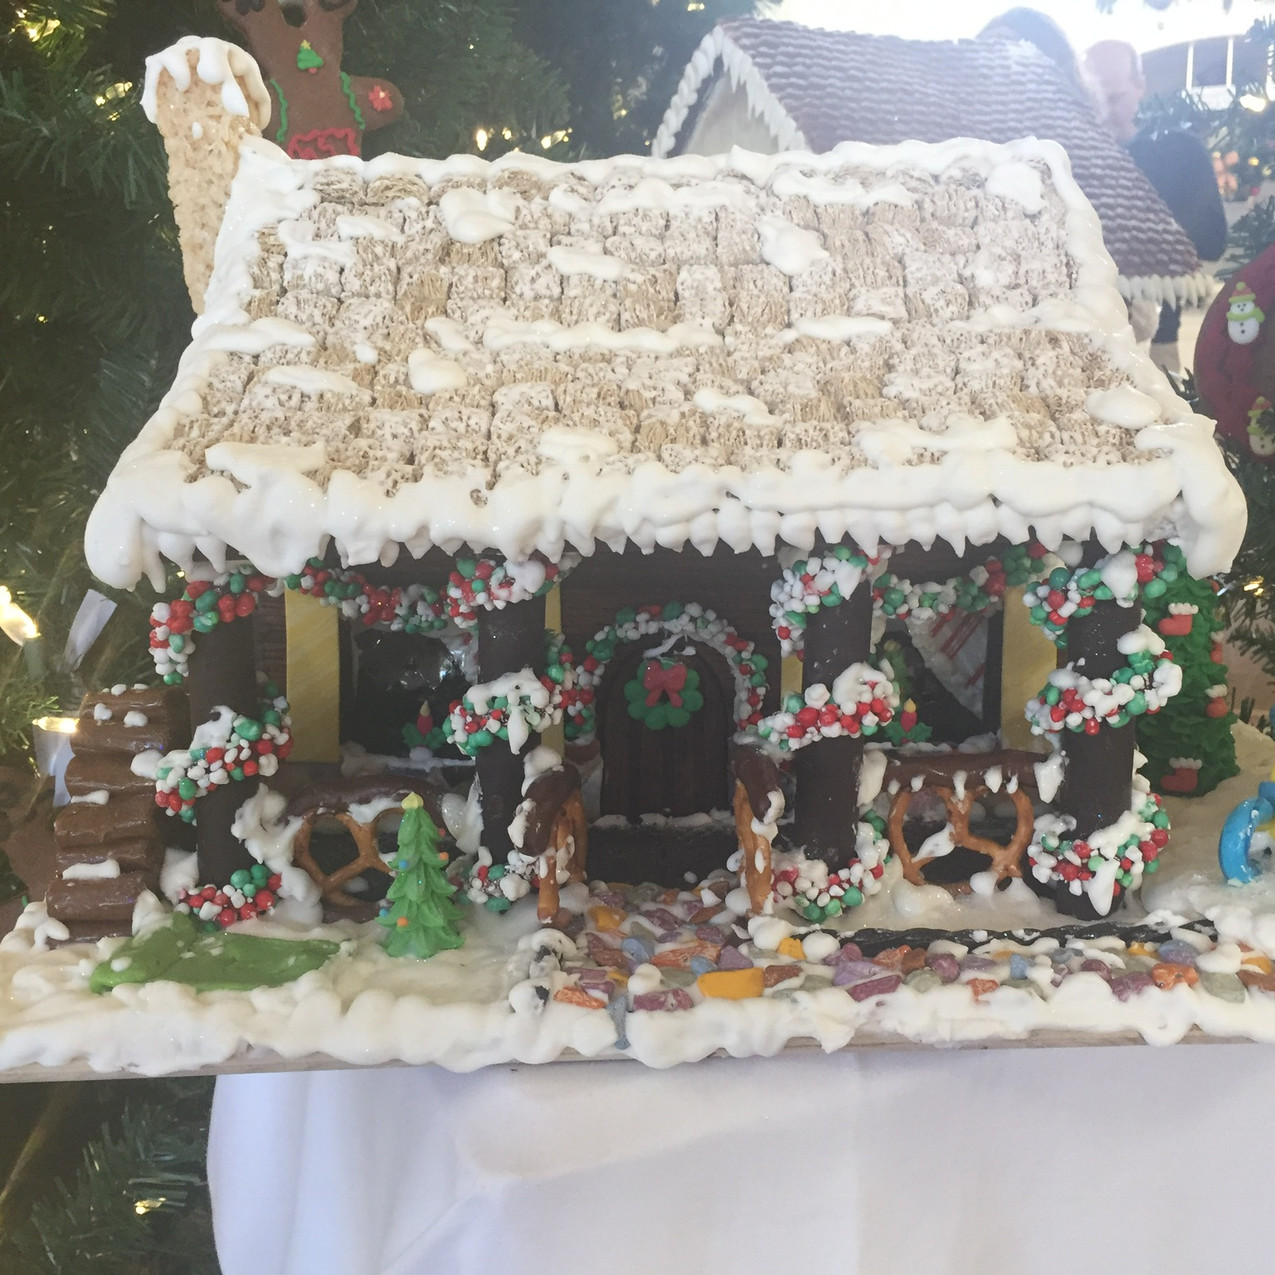 The Boardwalk Inn has a display of gingerbread houses created by the chefs.